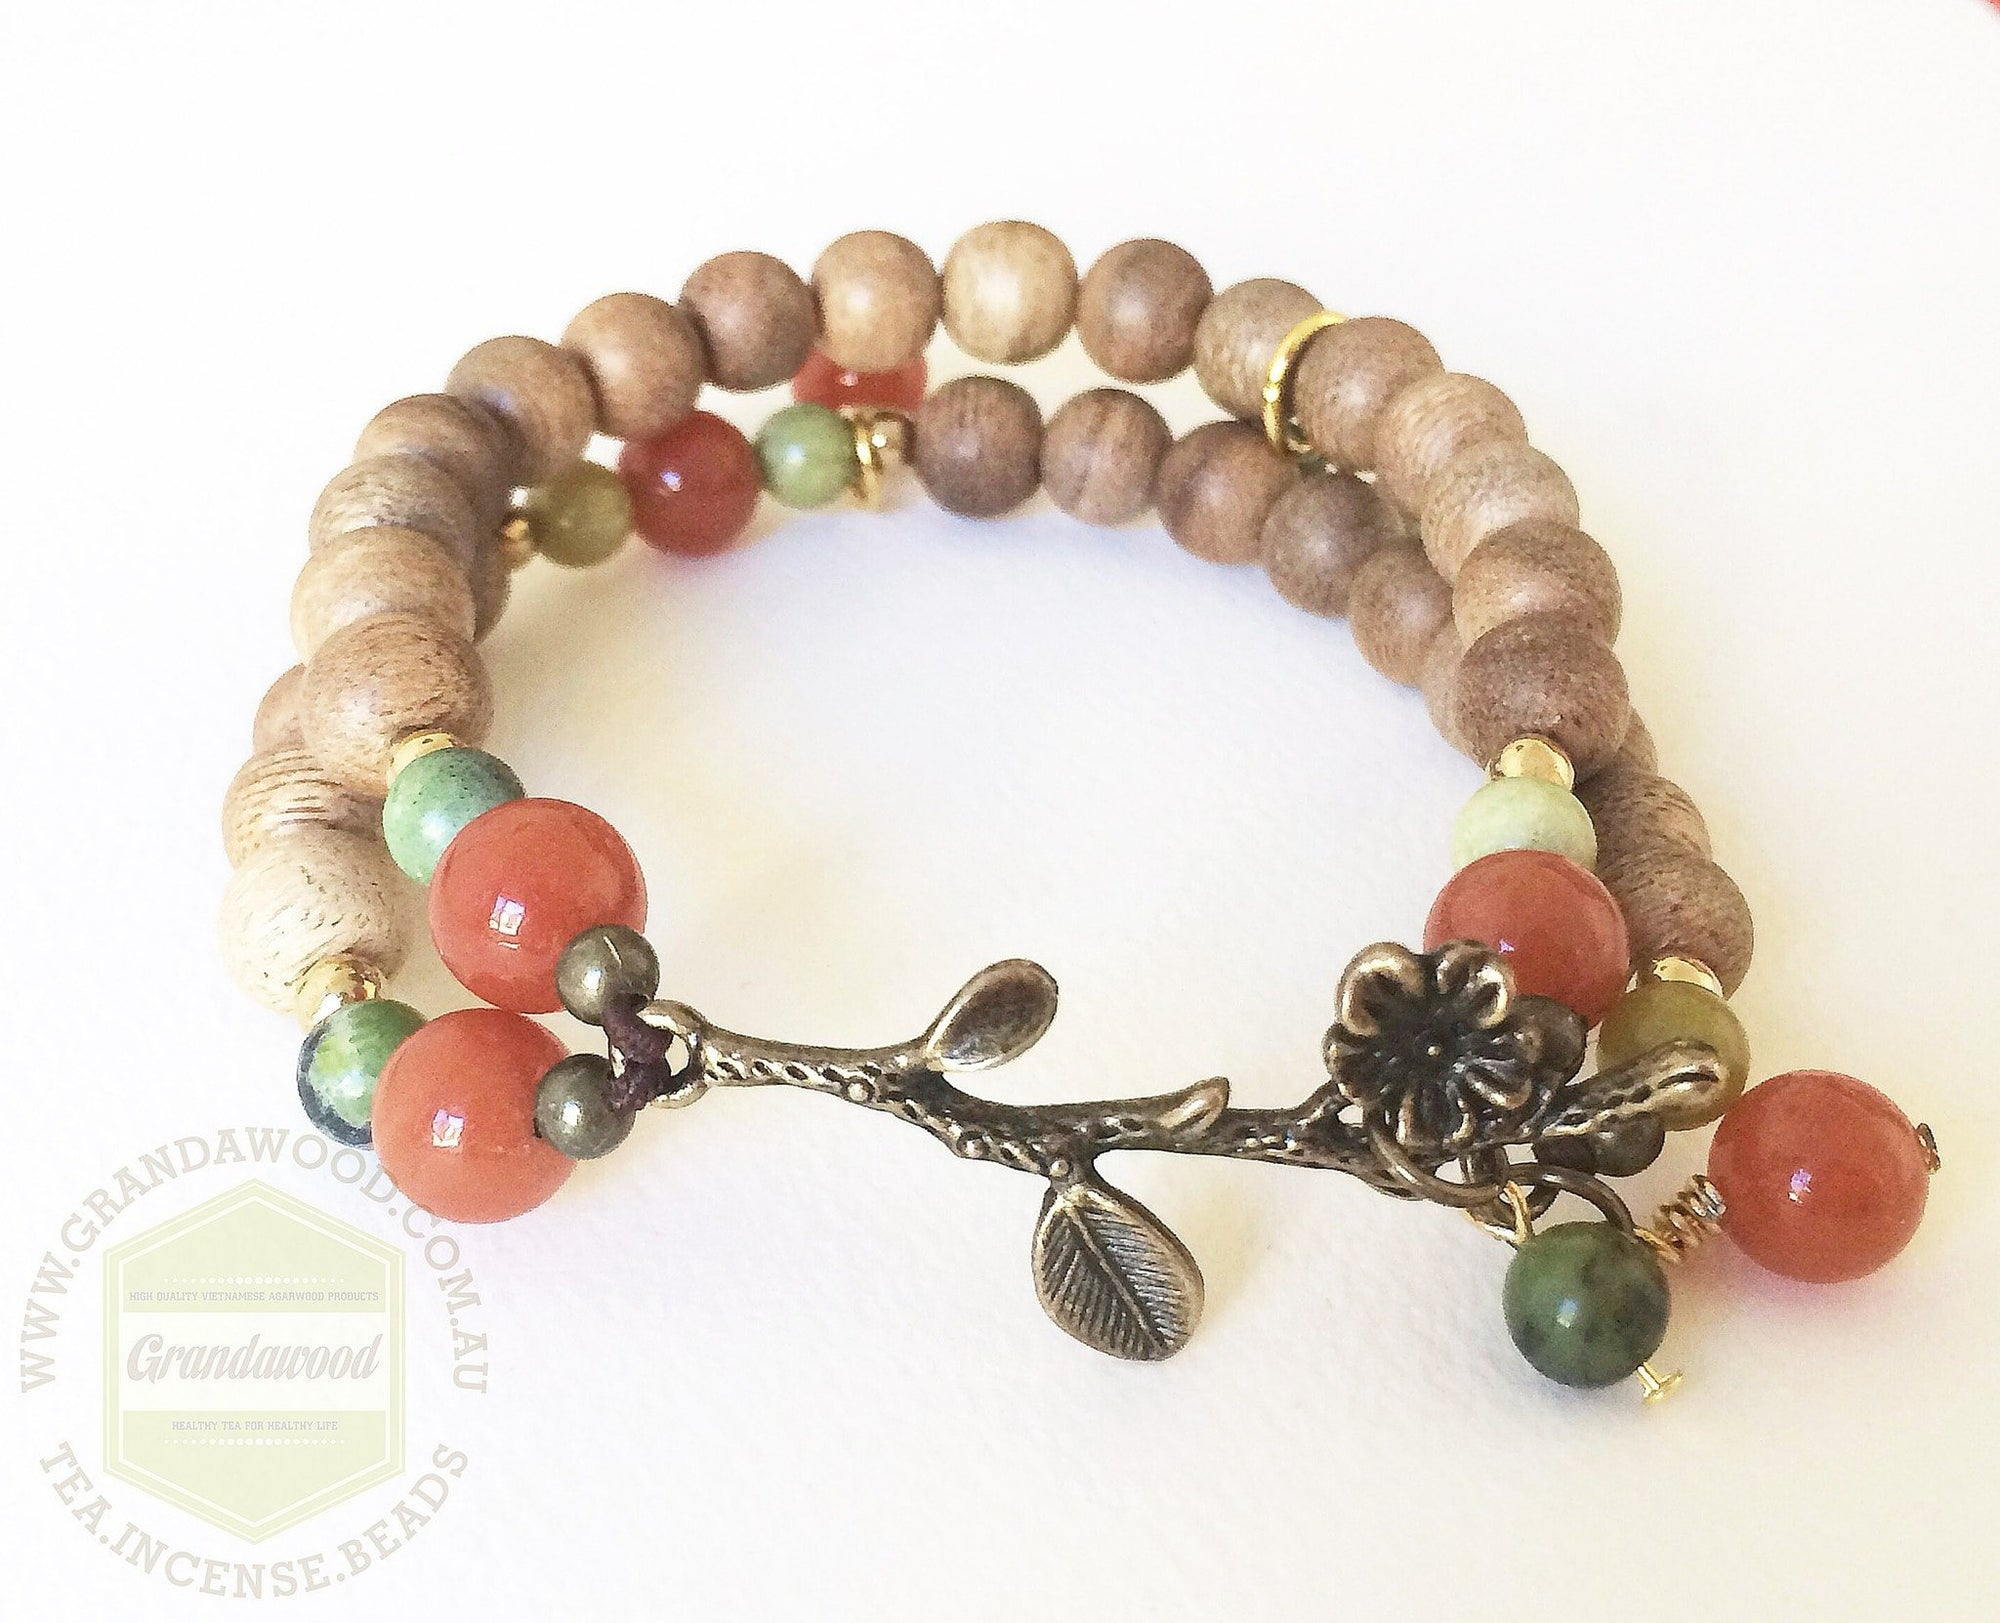 Agarwood silver jewelries Agarwood lucky charm with red aventurine and grass turquoise bringing fortune and wealth